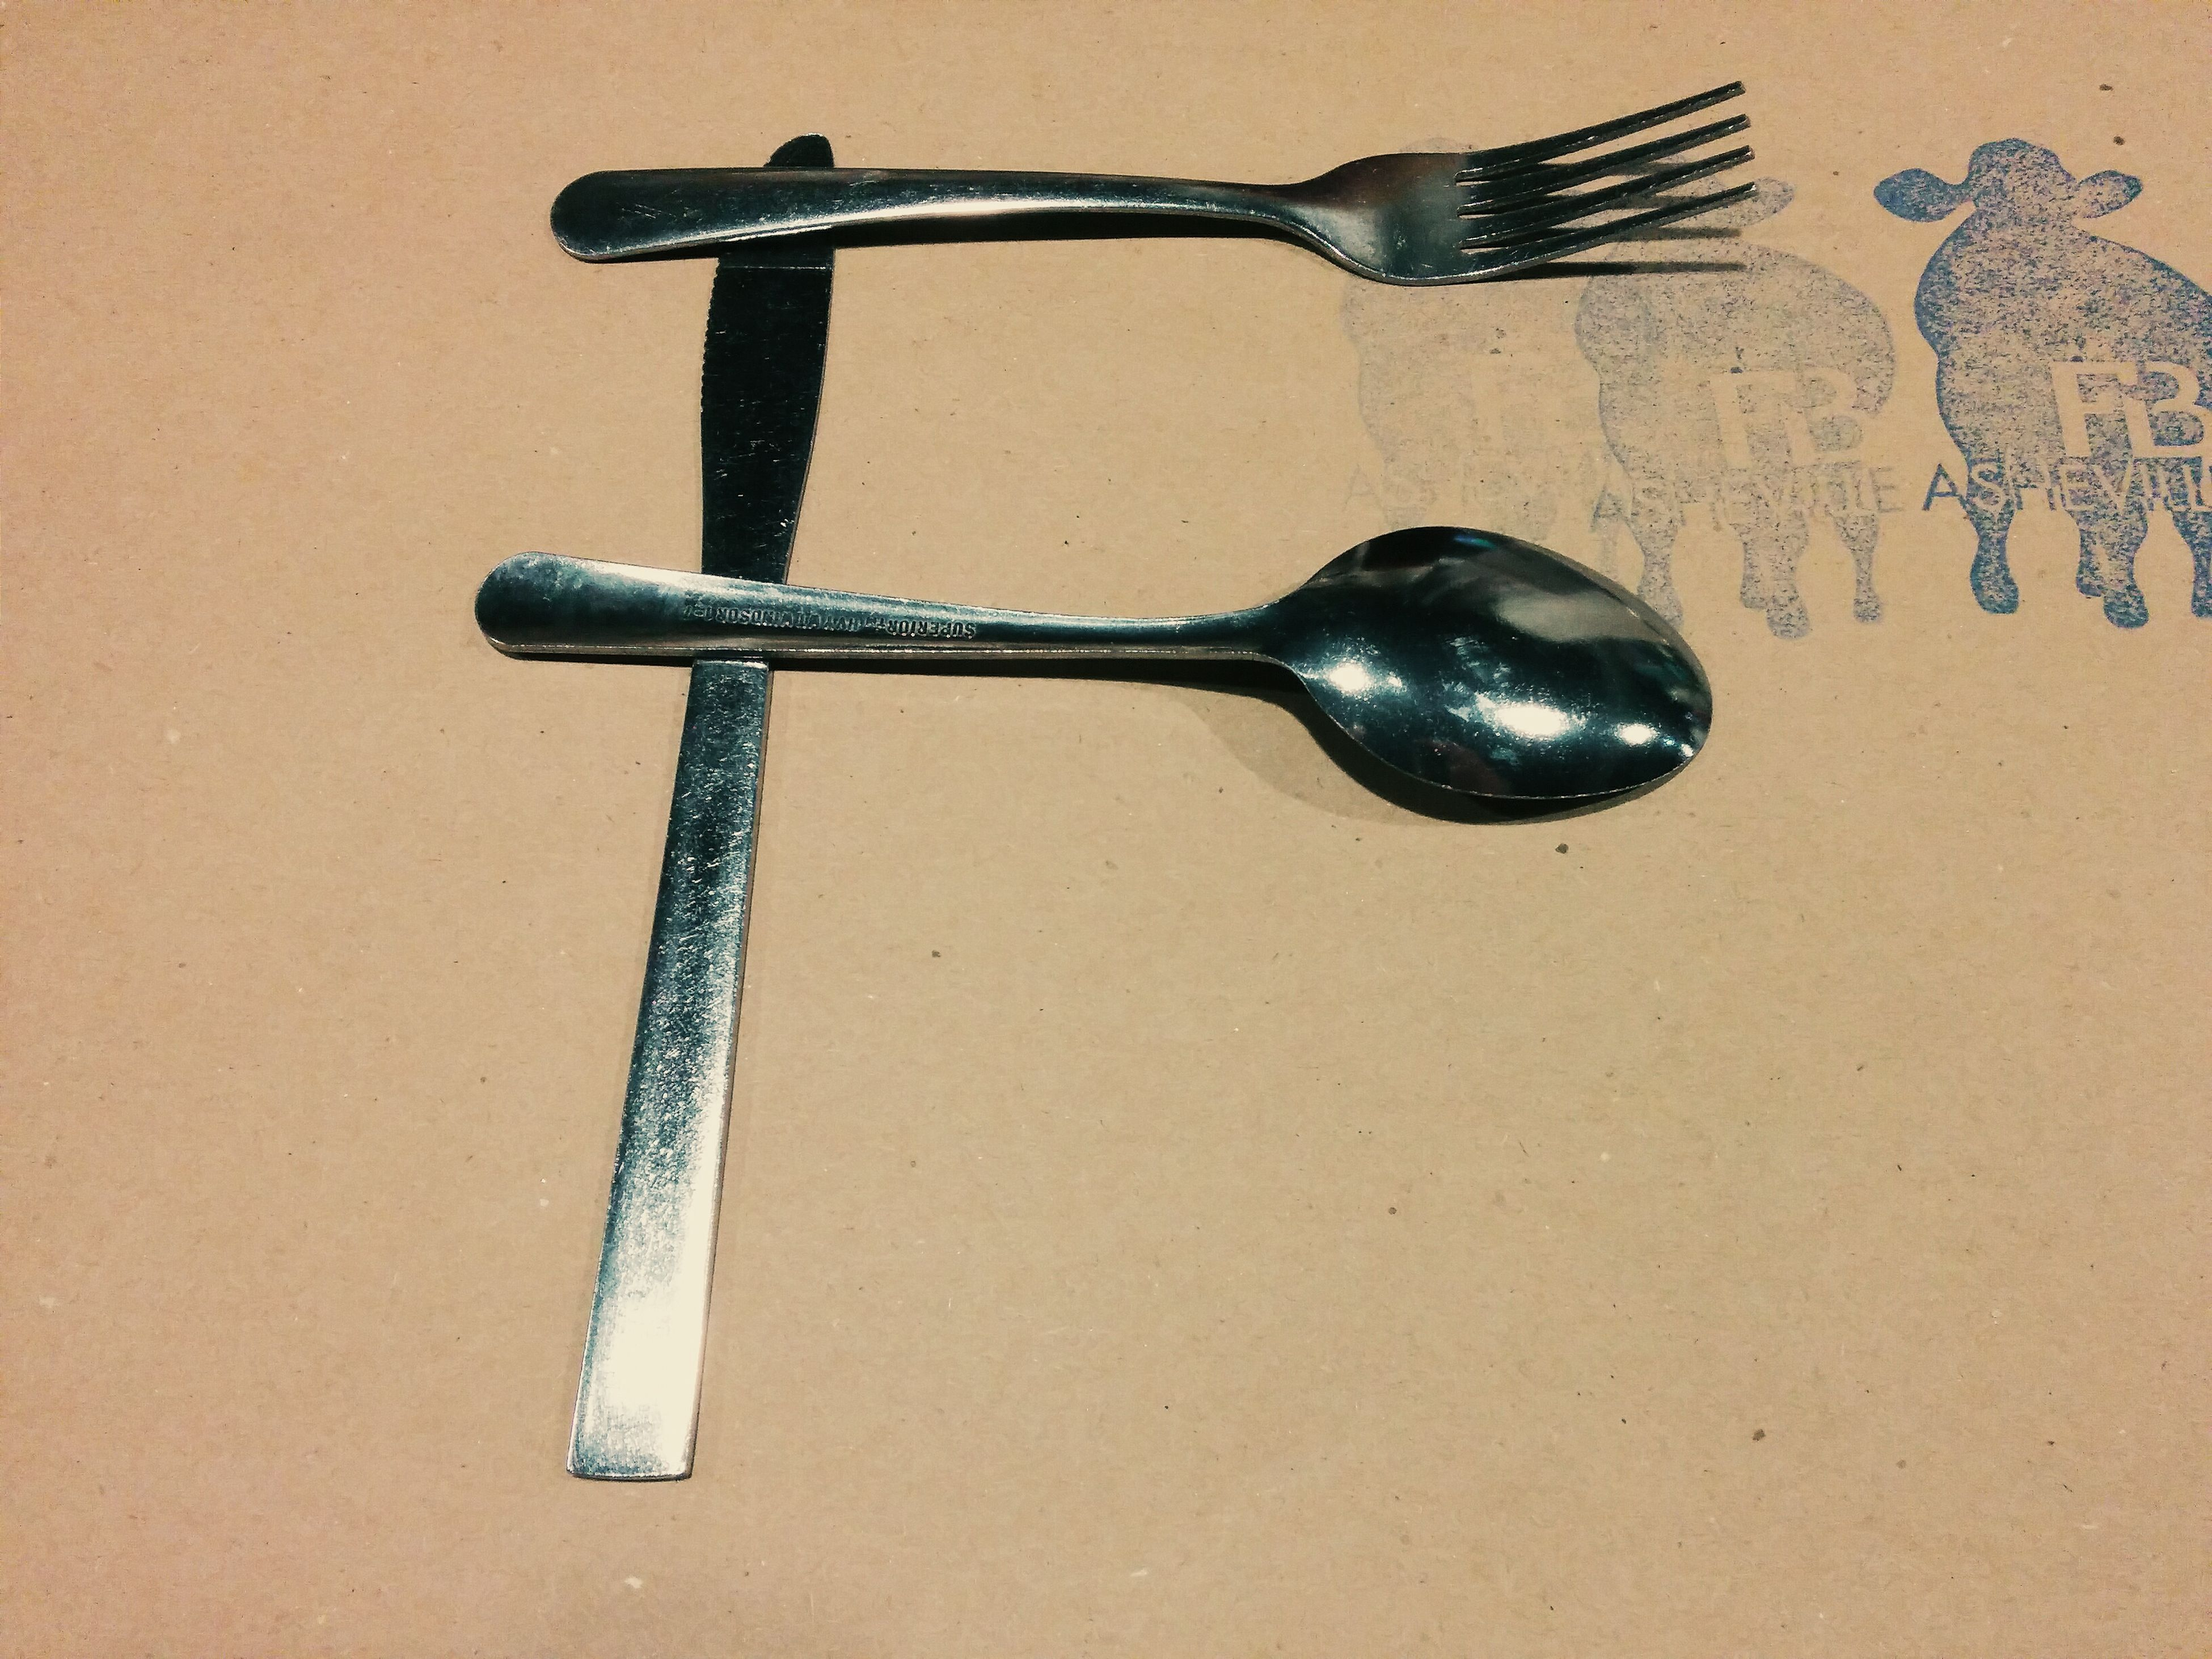 still life, metal, indoors, close-up, metallic, high angle view, single object, equipment, work tool, studio shot, no people, table, wood - material, old, man made object, two objects, directly above, wall - building feature, spoon, day